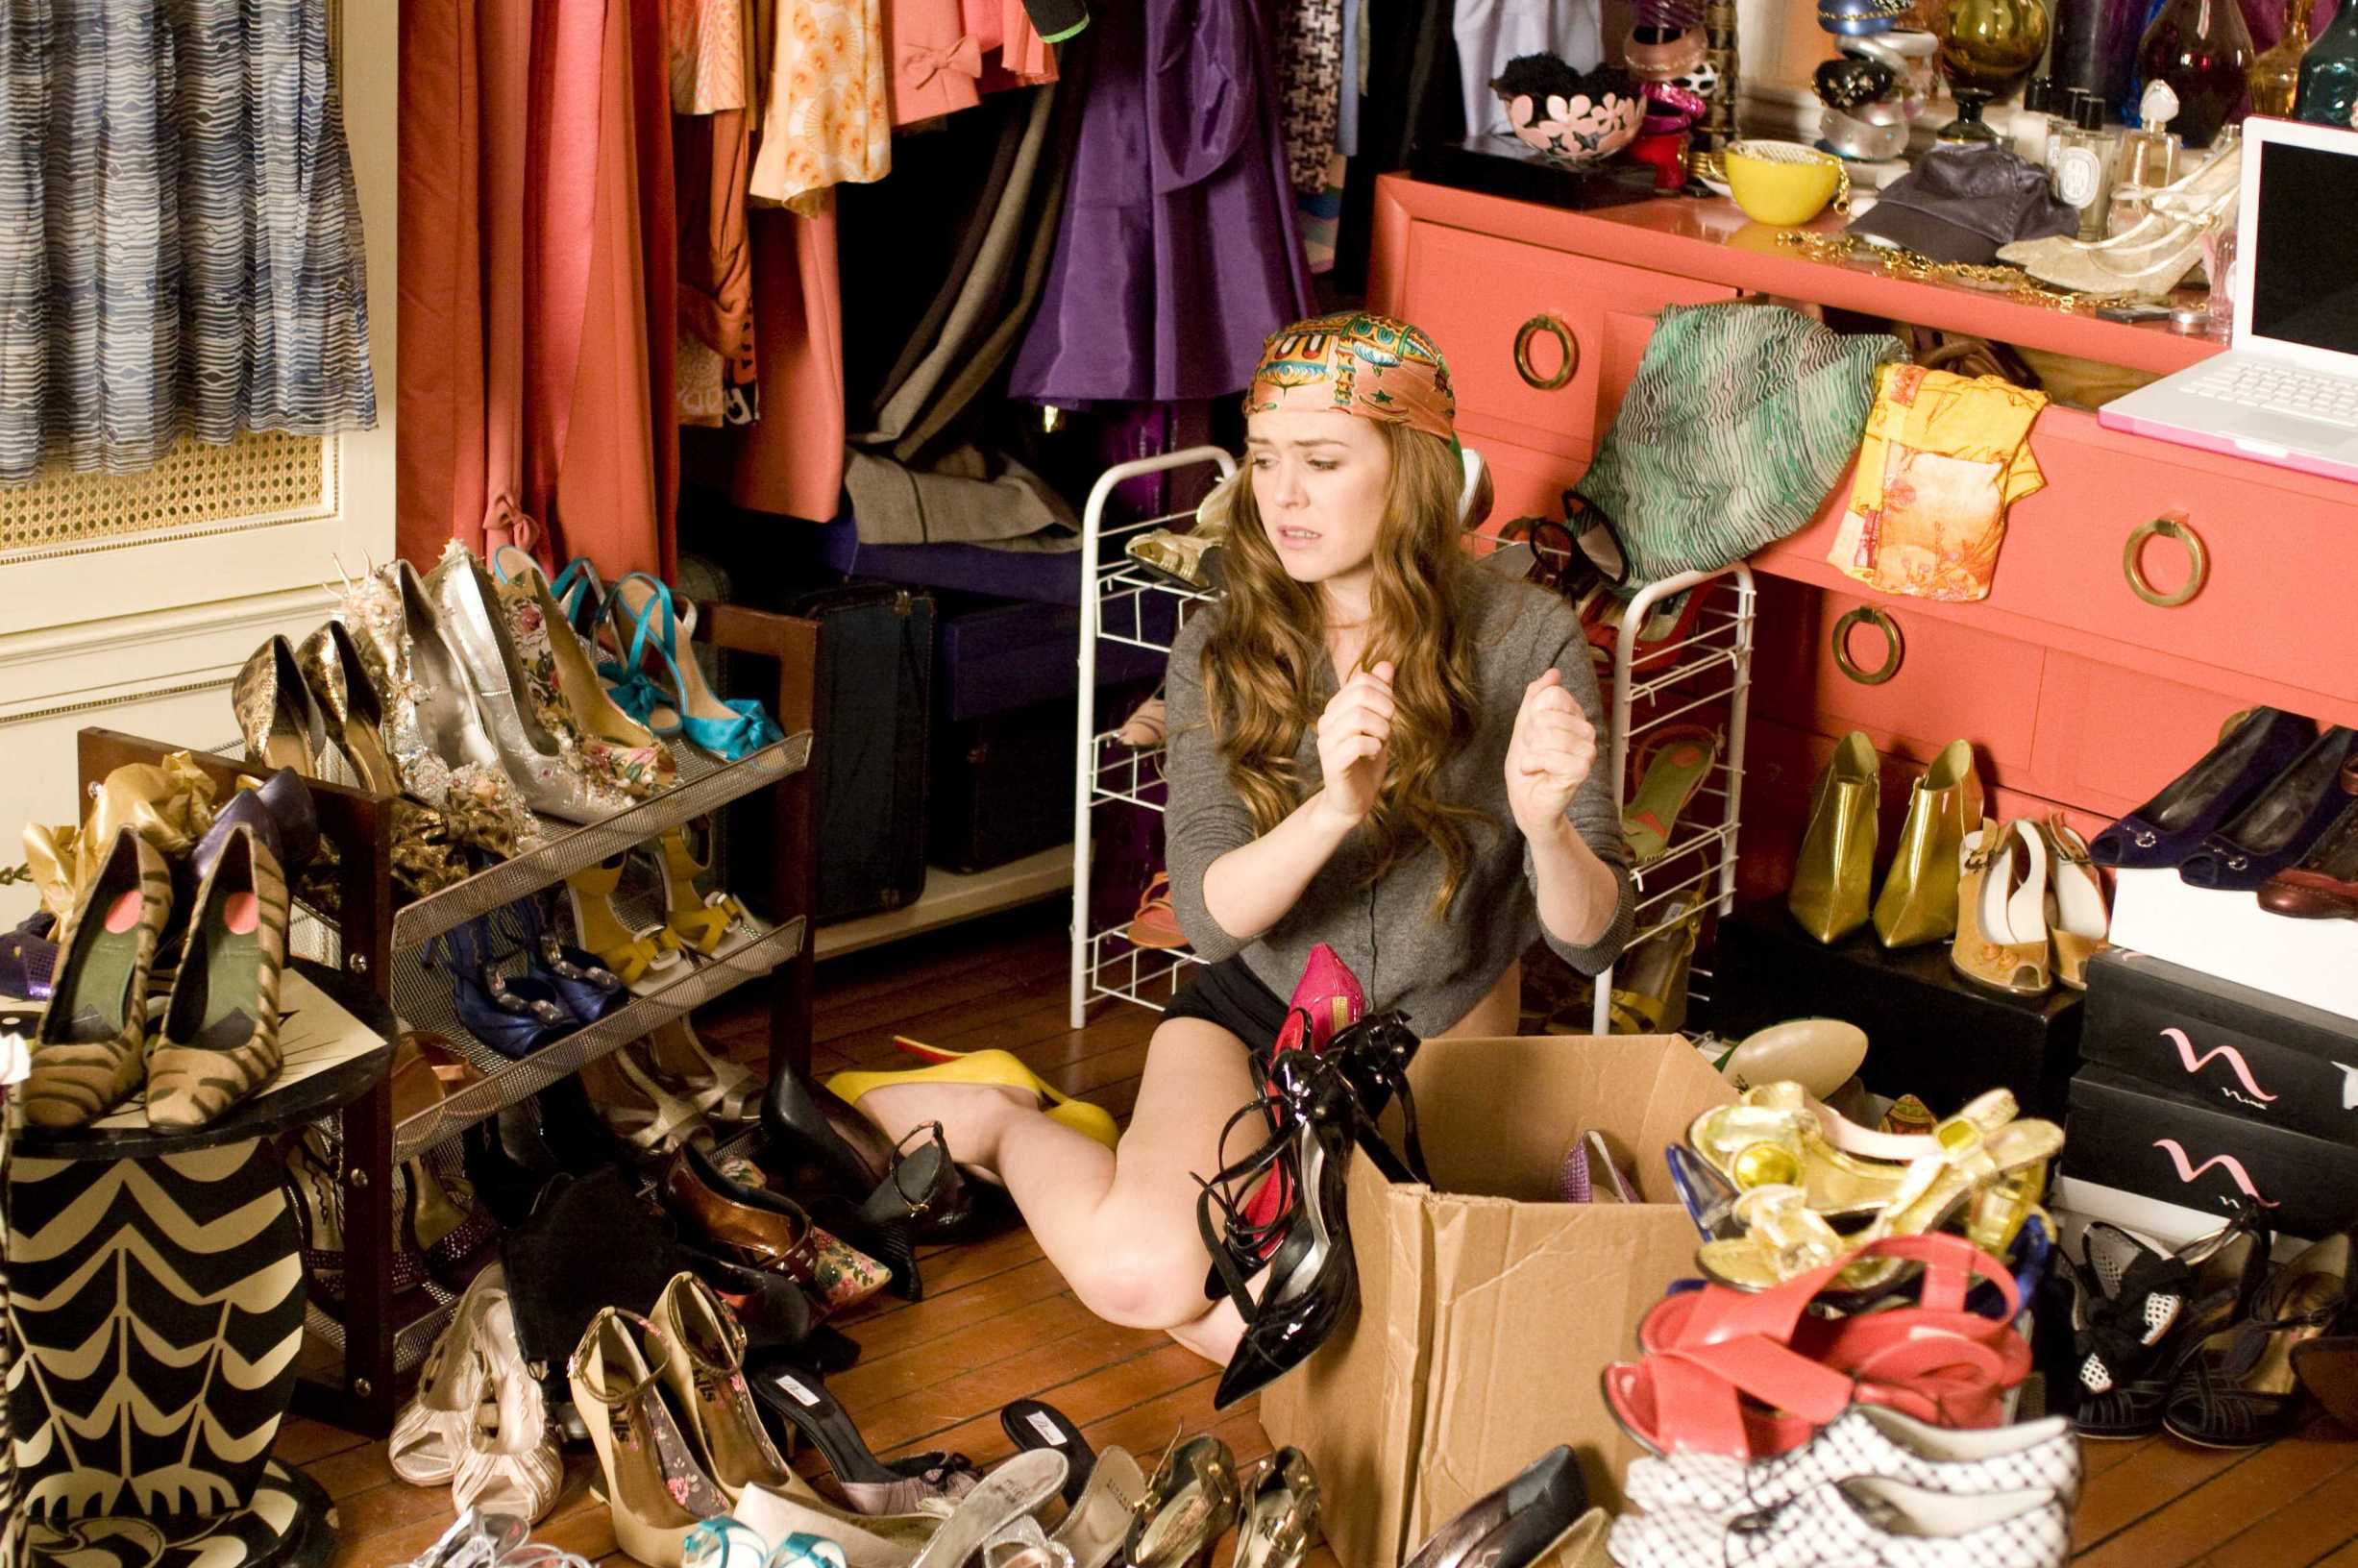 """CONFESSIONS OF A SHOPAHOLIC"" Isla Fisher Ph: Robert Zuckerman © Touchstone Pictures and Jerry Bruckheimer, Inc. All Rights Reserved."